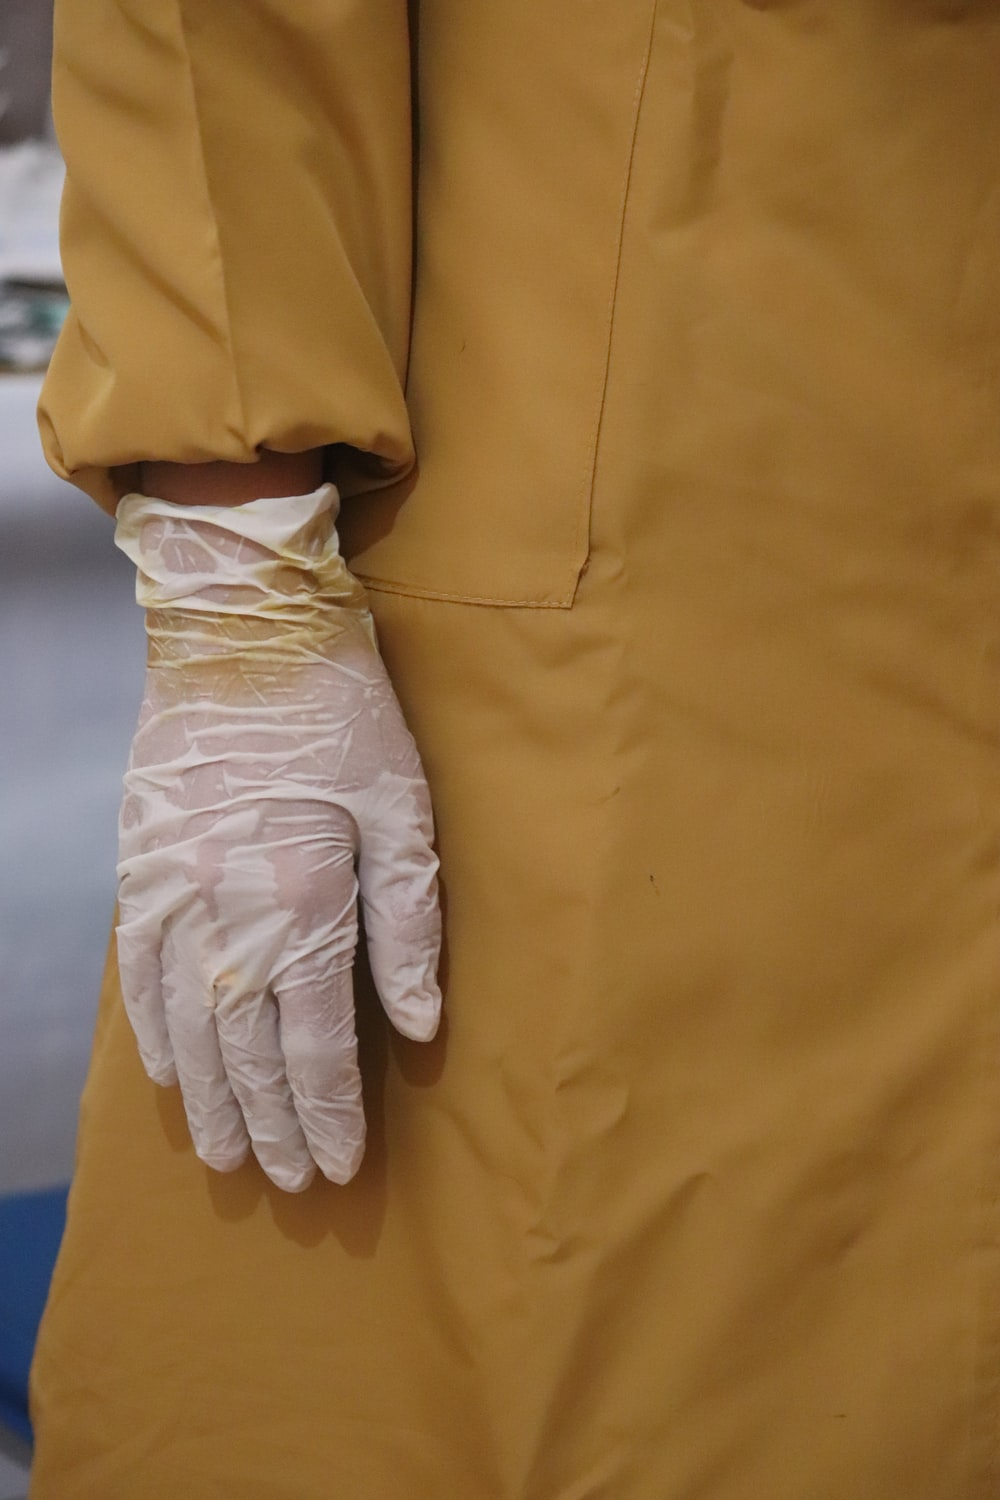 person in white pants and white gloves